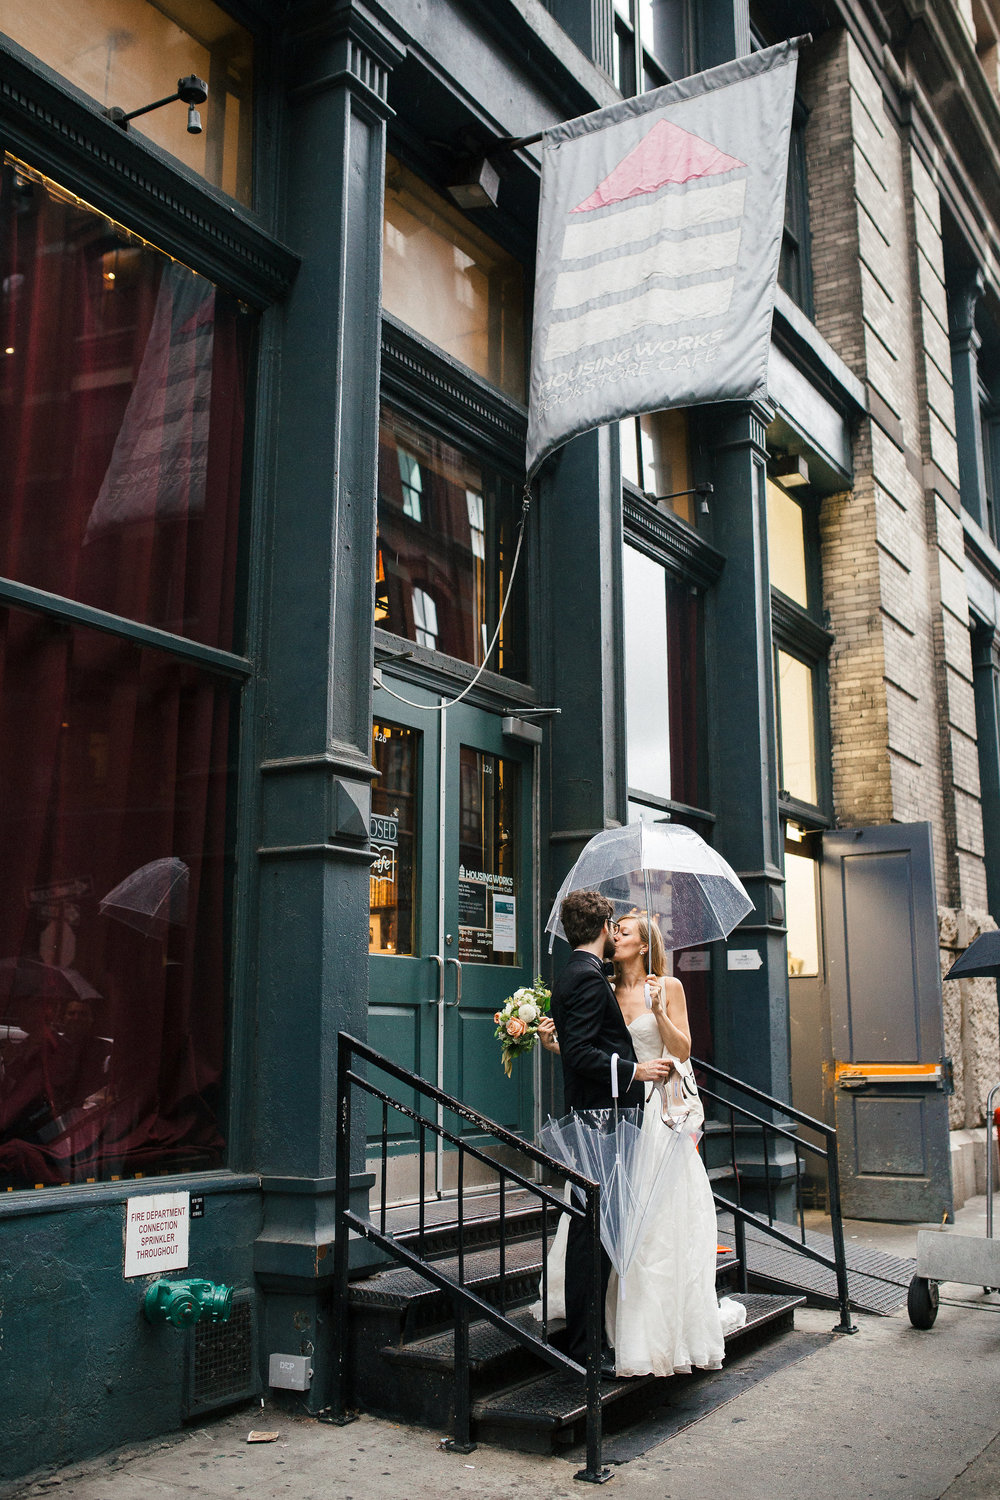 soho-nyc-new-york-wedding-photography-44.jpg